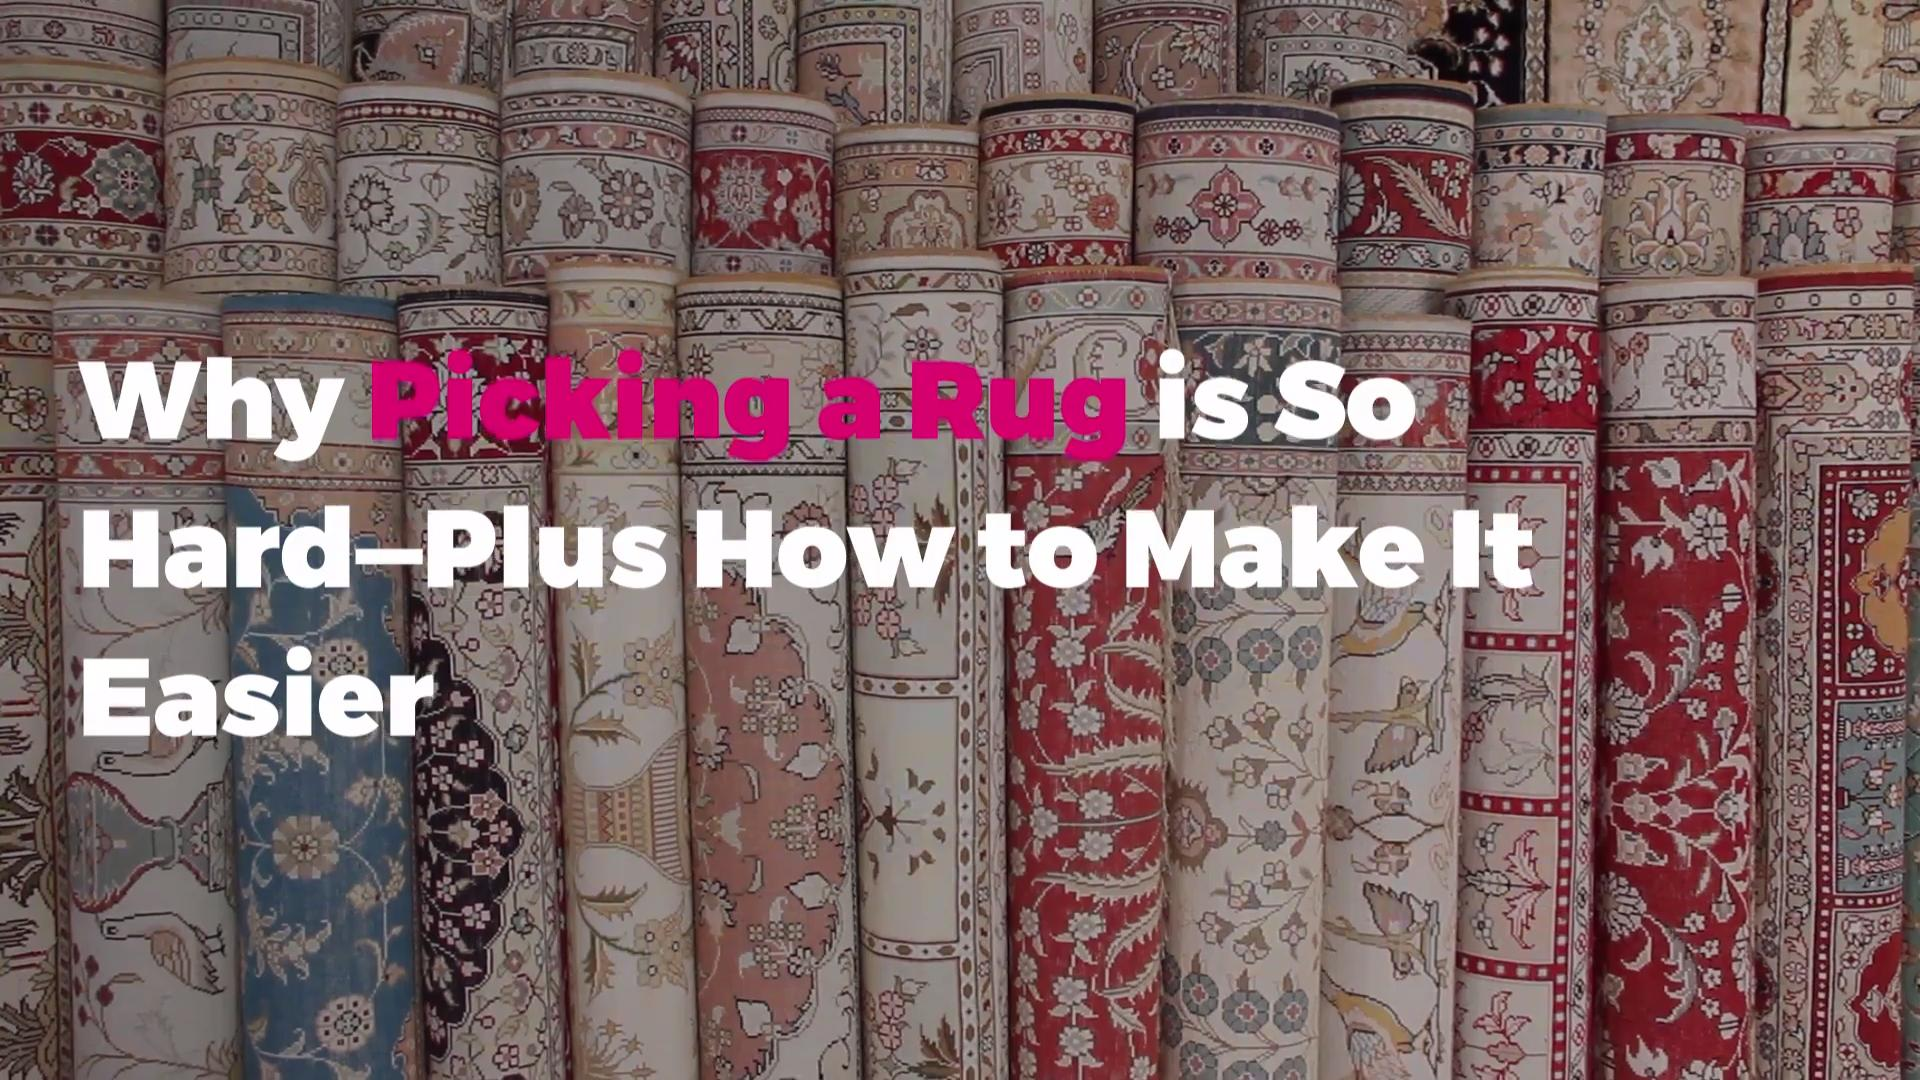 Why Picking a Rug is So Hard, According to a Pro—Plus How to Make It Easier